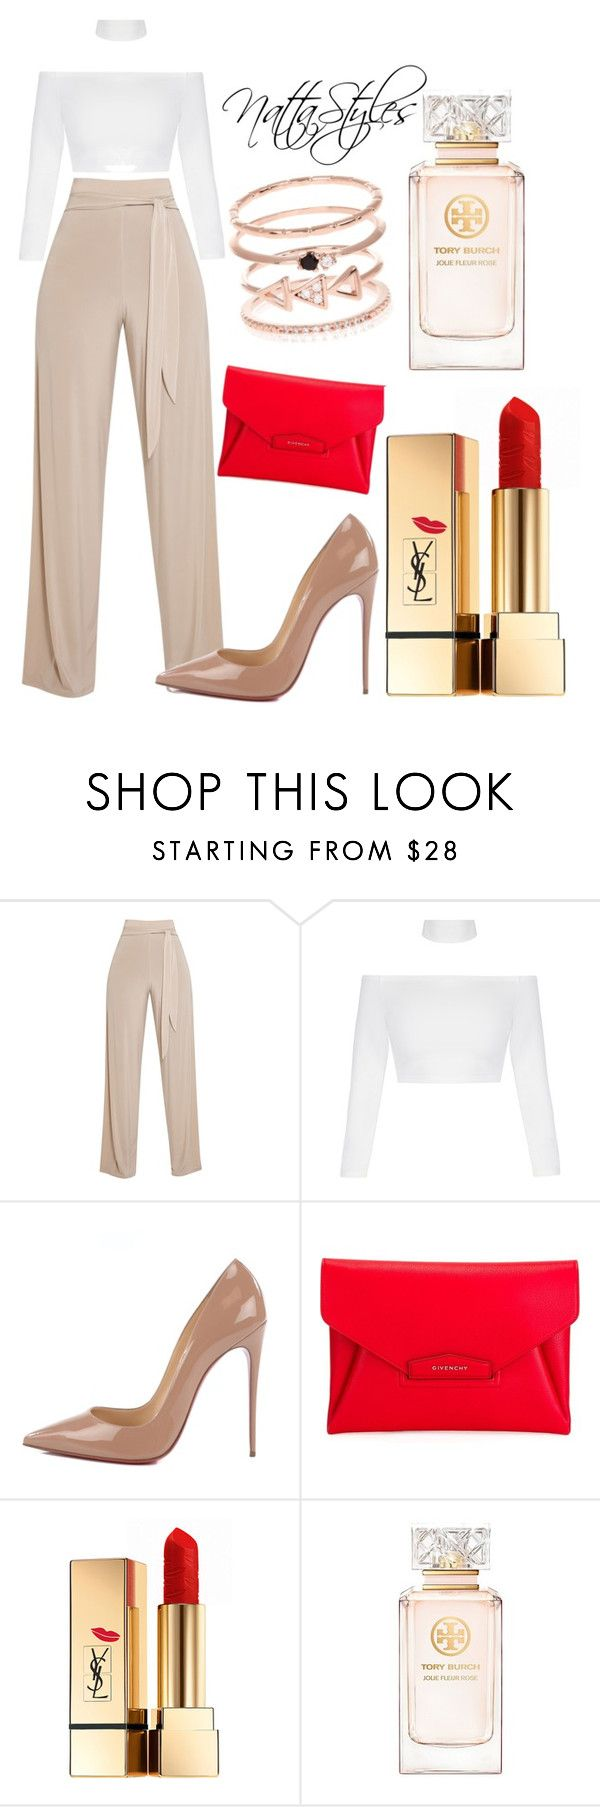 """Red Vogue"" by nattaca on Polyvore featuring Christian Louboutin, Givenchy, Yves Saint Laurent, Tory Burch and Accessorize"